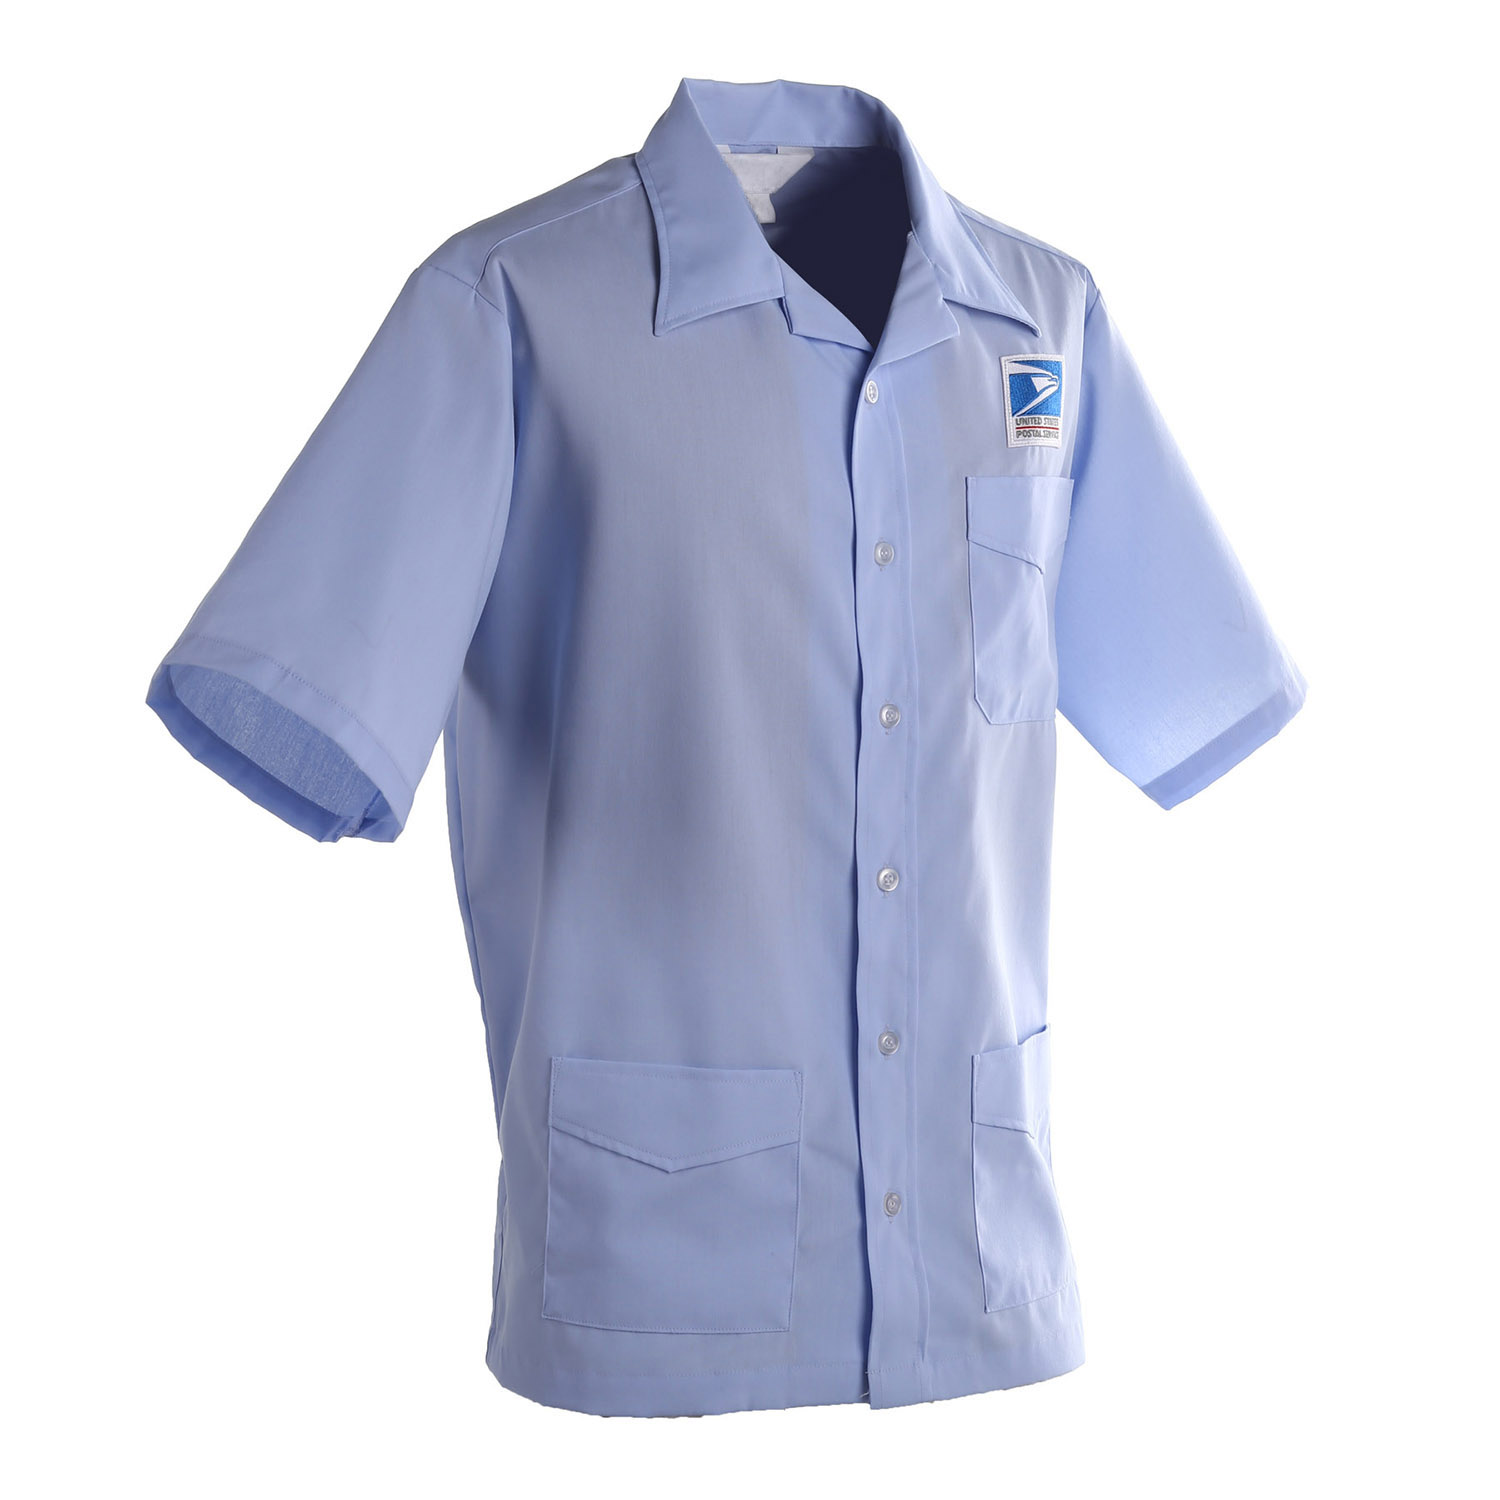 Uniform Shirts For Men